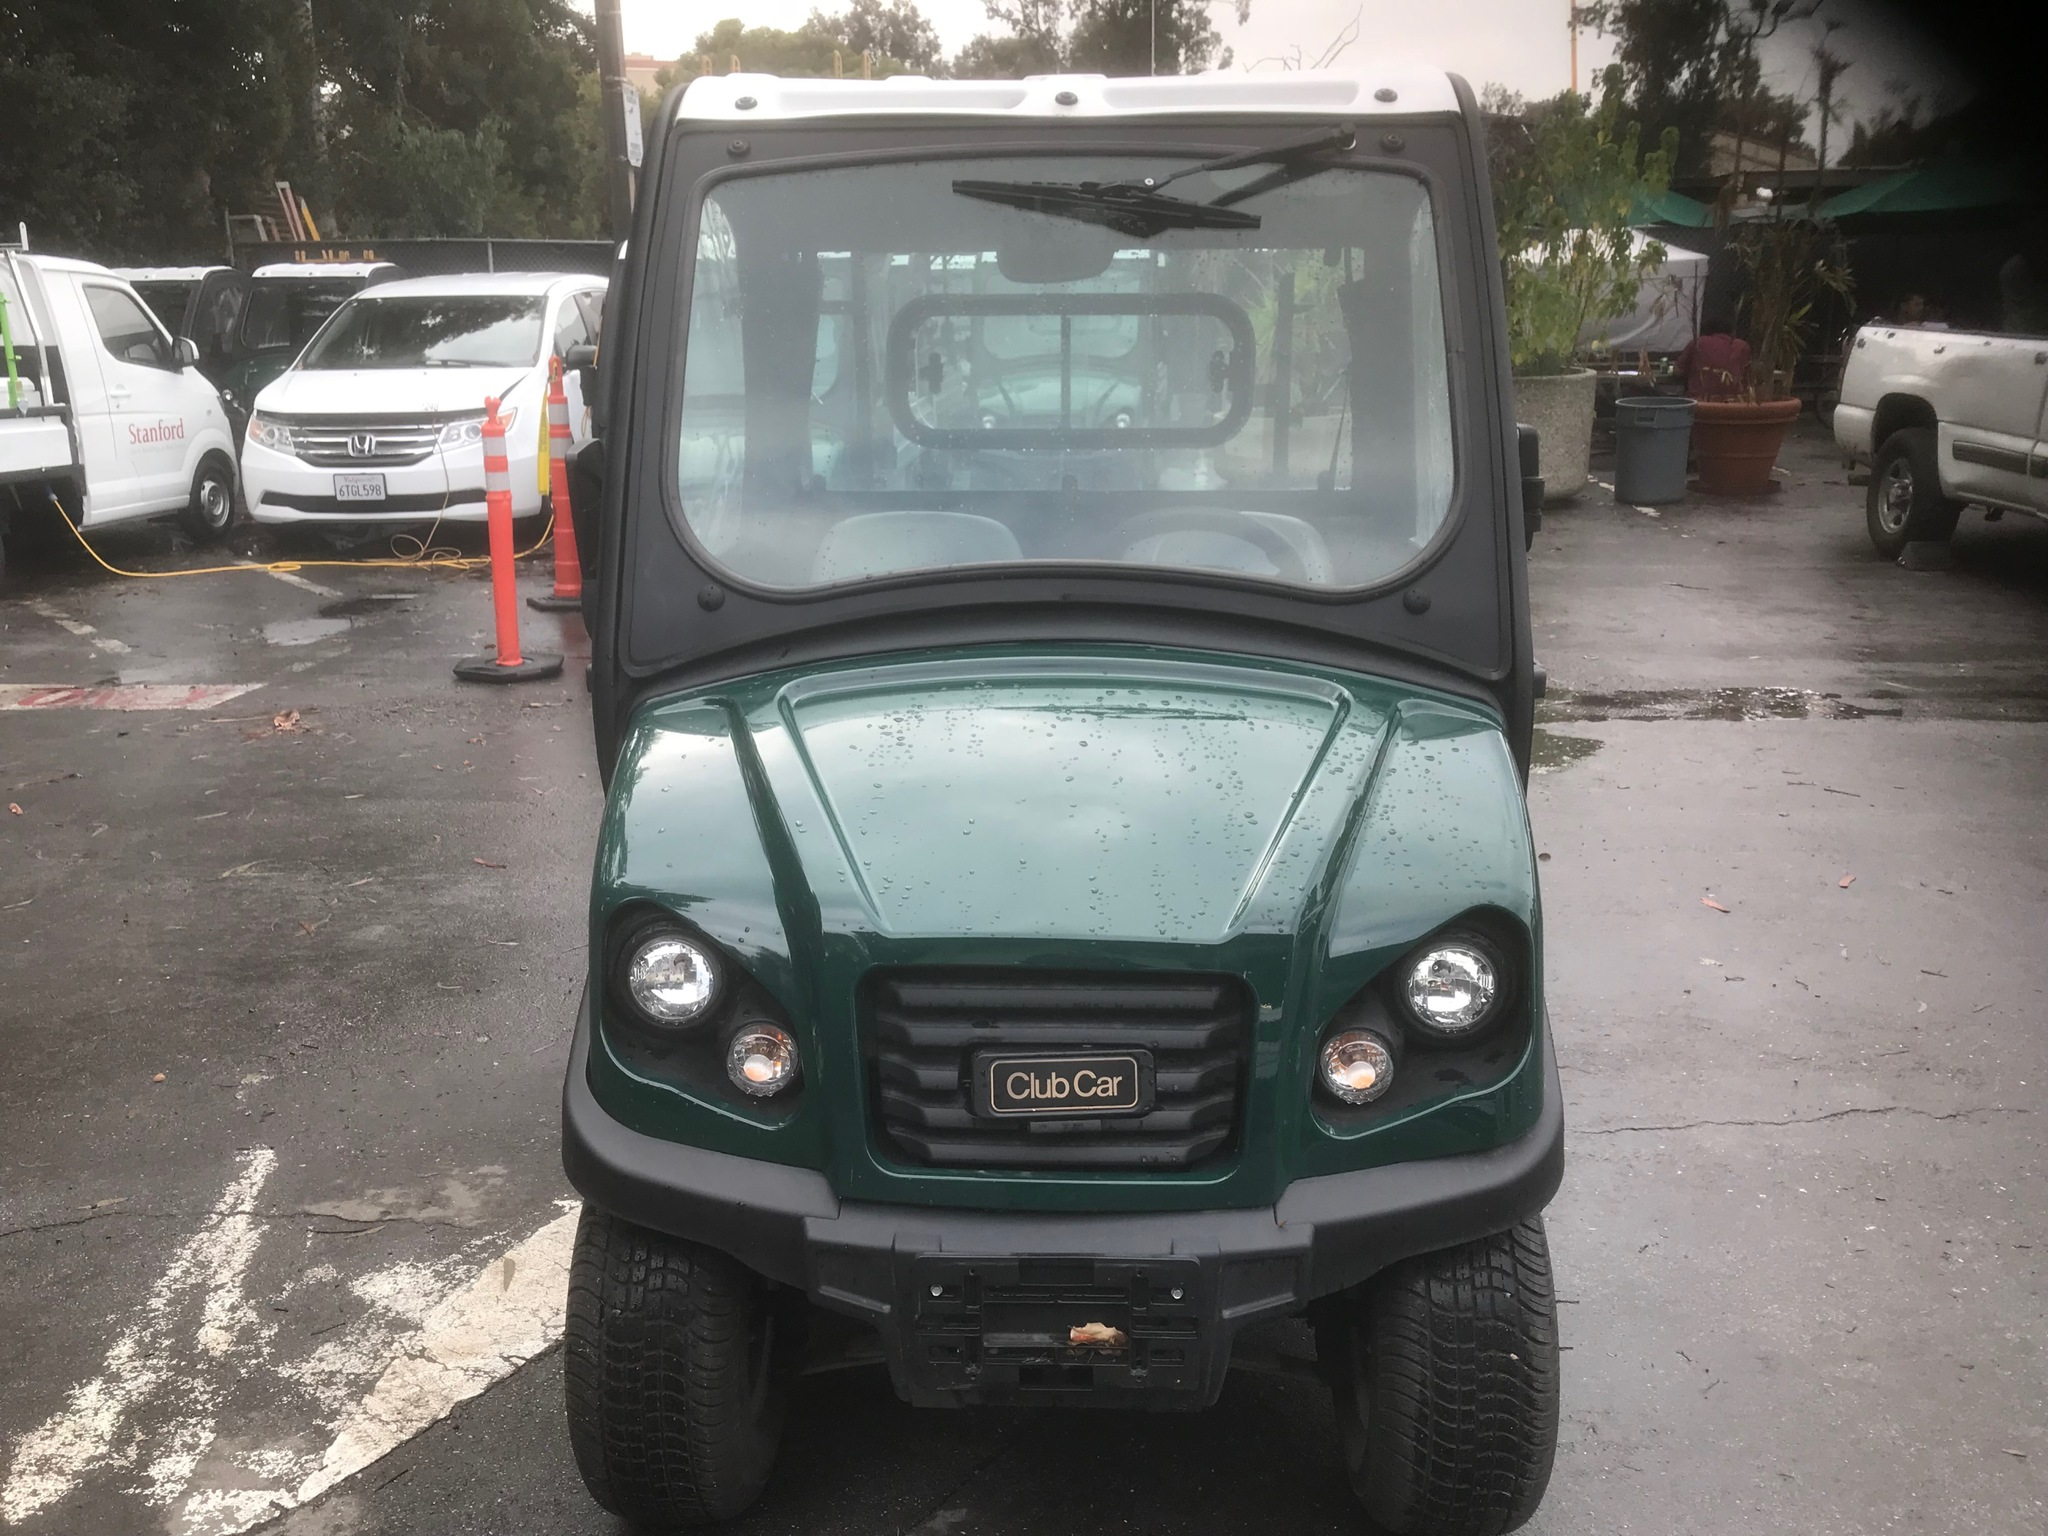 Featured Image for 34. Club Car Carryall 710 LSV